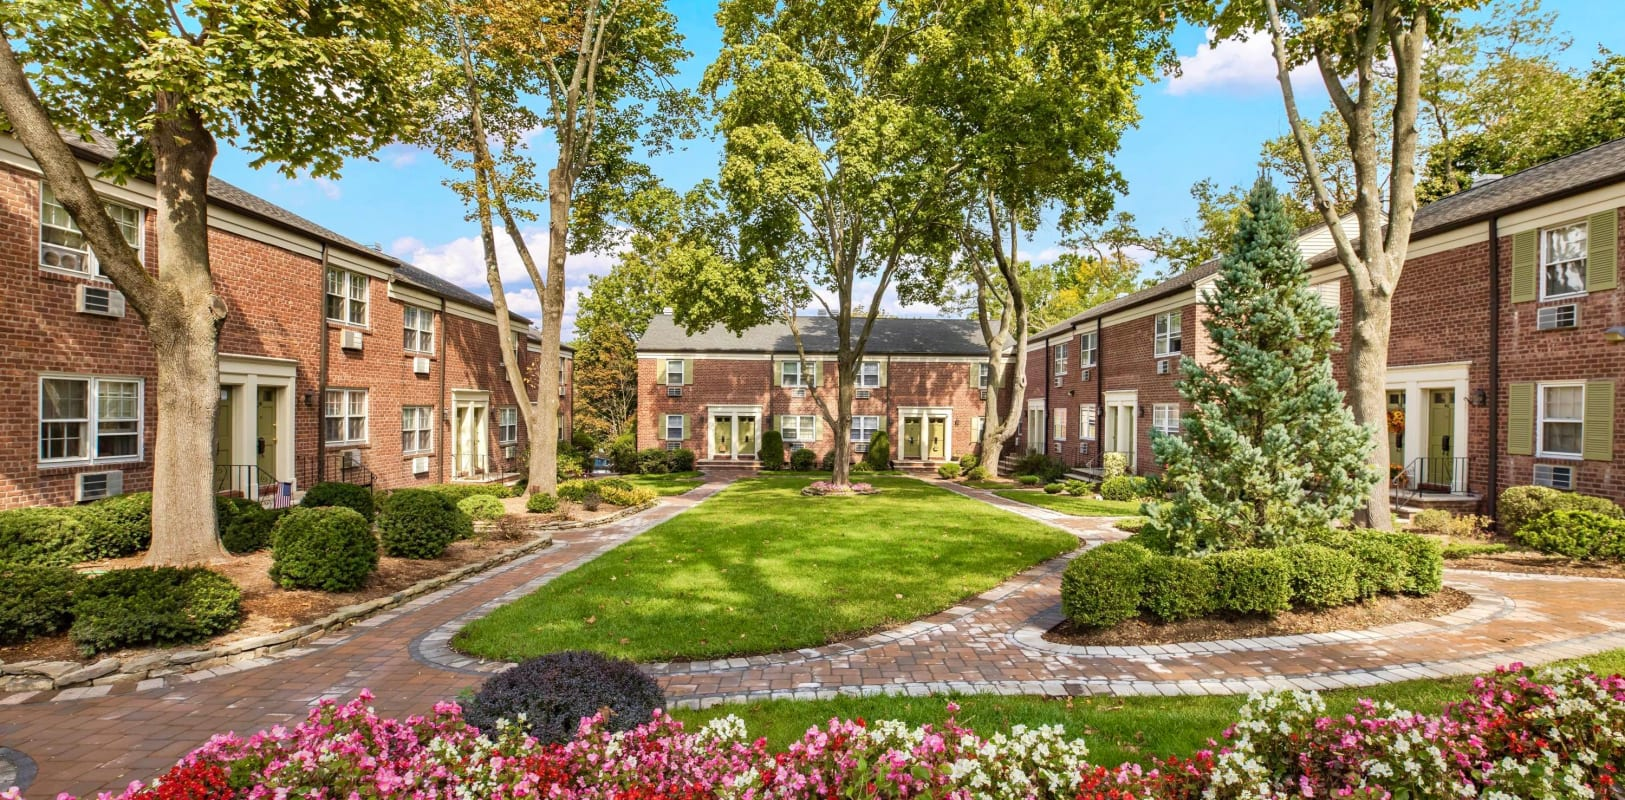 Beautiful brick exterior surround by a lush manicure landscape at General Wayne Townhomes and Ridgedale Gardens in Madison, New Jersey